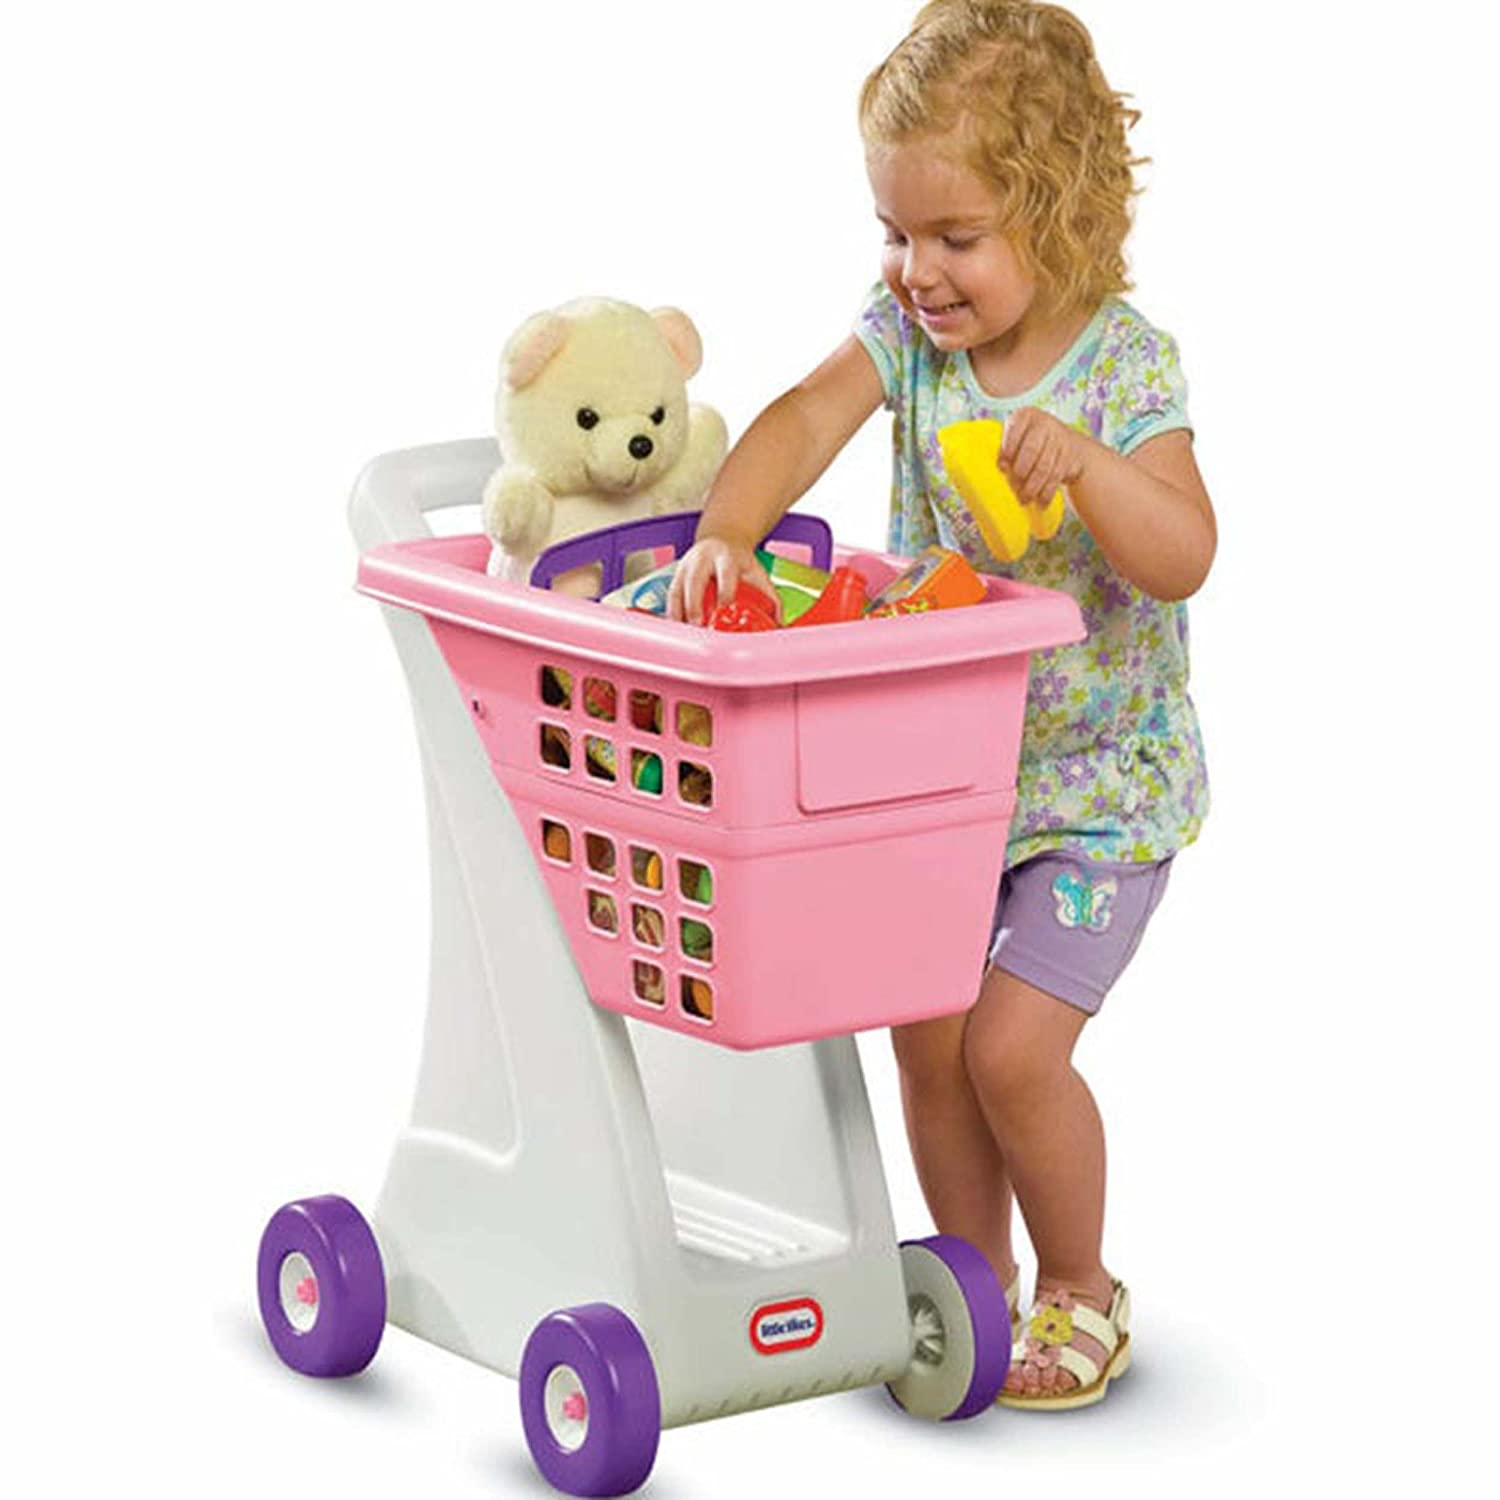 Toys For 2 Year Olds For Girls : Whatre the best toys for year old girls in